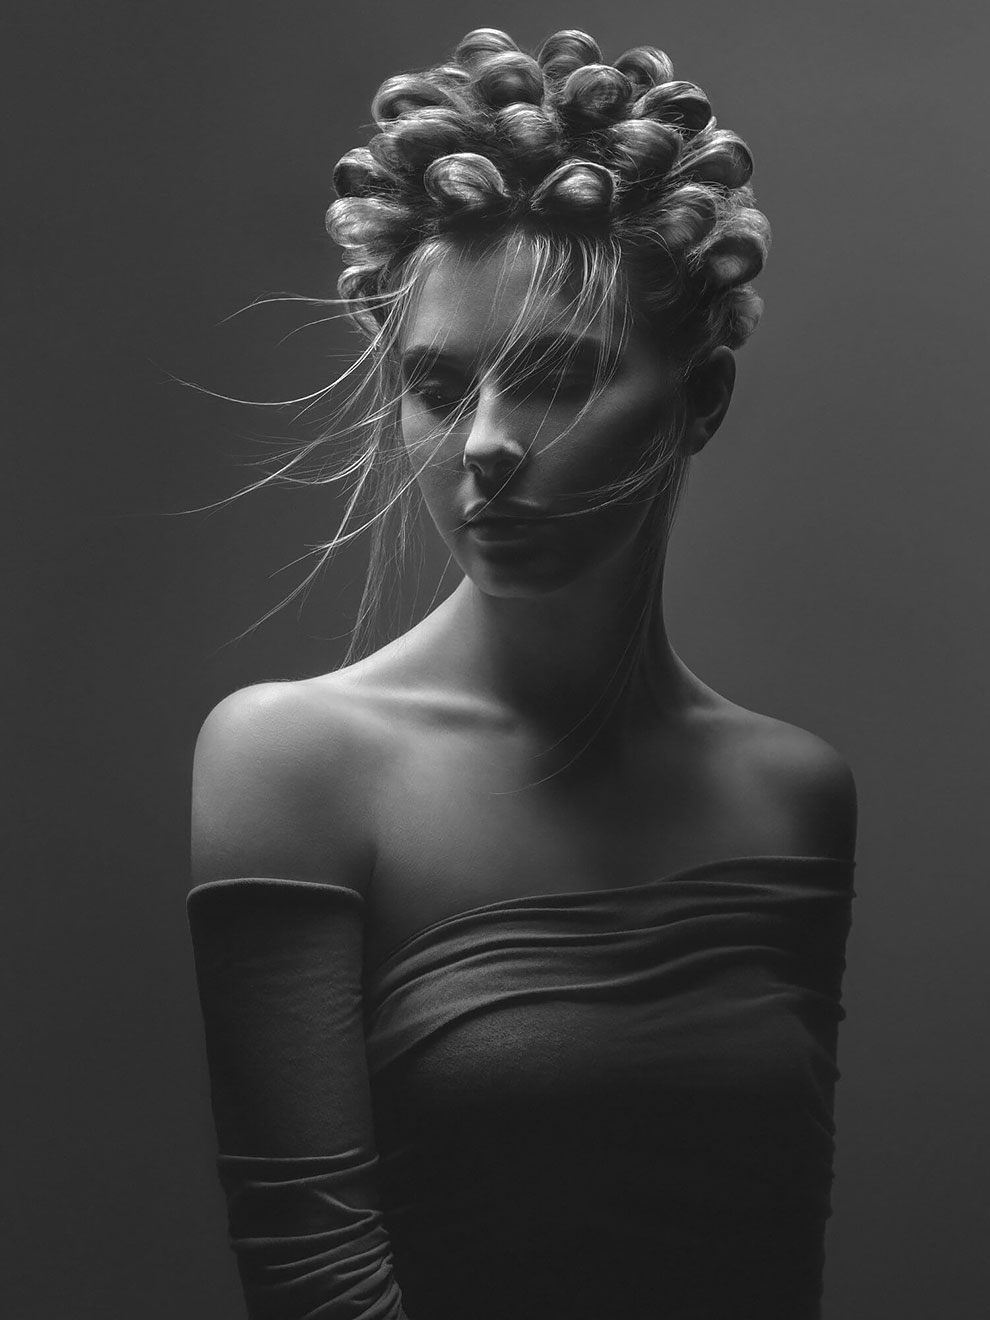 HASSELBLAD MASTERS AWARD 2018 Beauty & Fashion Category Winner Michal Baran, Trim, Ireland 2